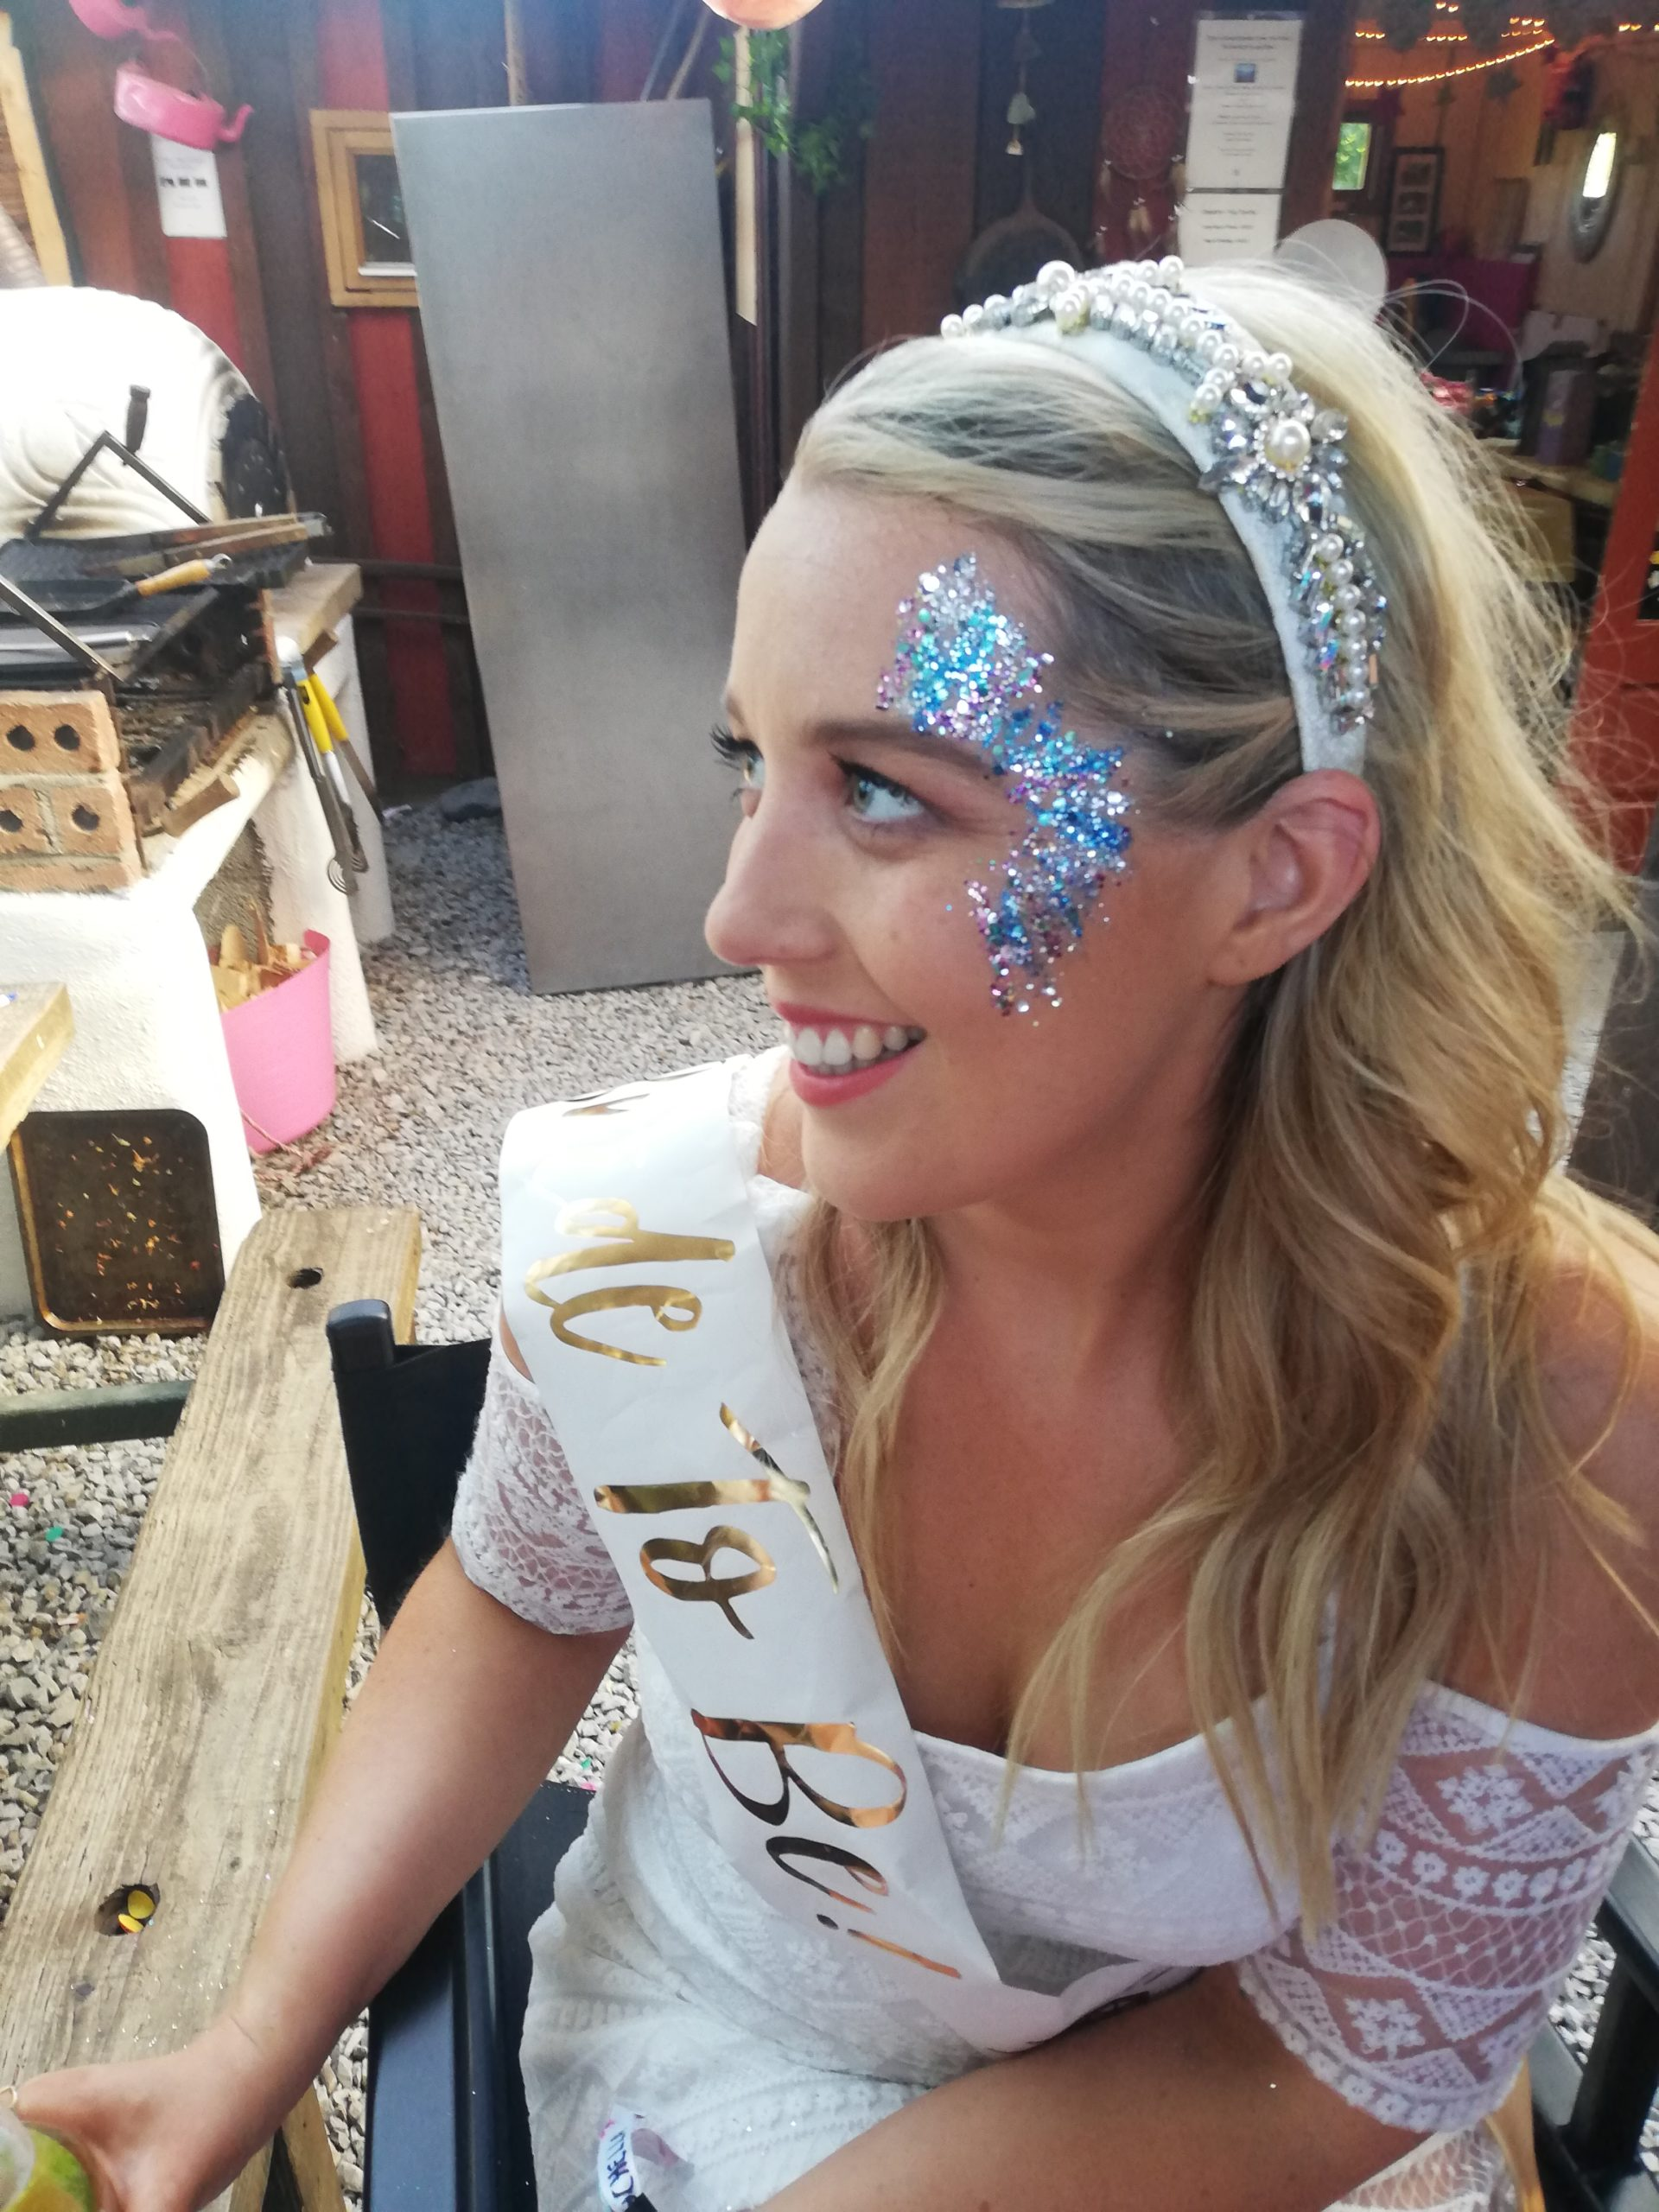 What better craic for your hen party than glitz glam and glitter for your weekend with the gals before your big day? For festival fun themed weekends, you can count on us to bring you some gorge guilt free glitter –Glamping style!